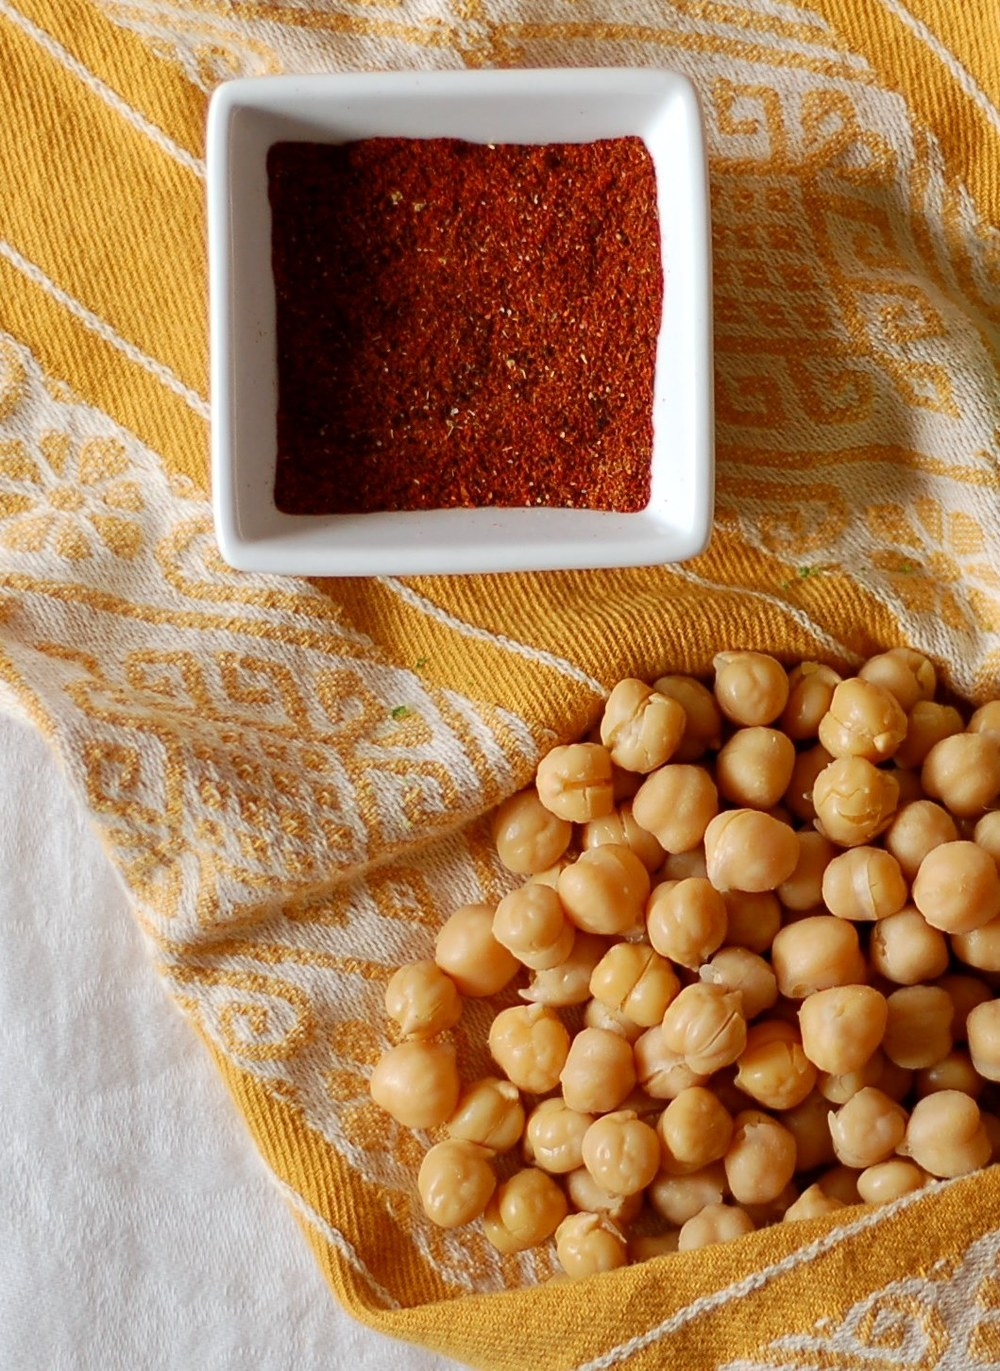 Toasted Chickpeas Ingredients